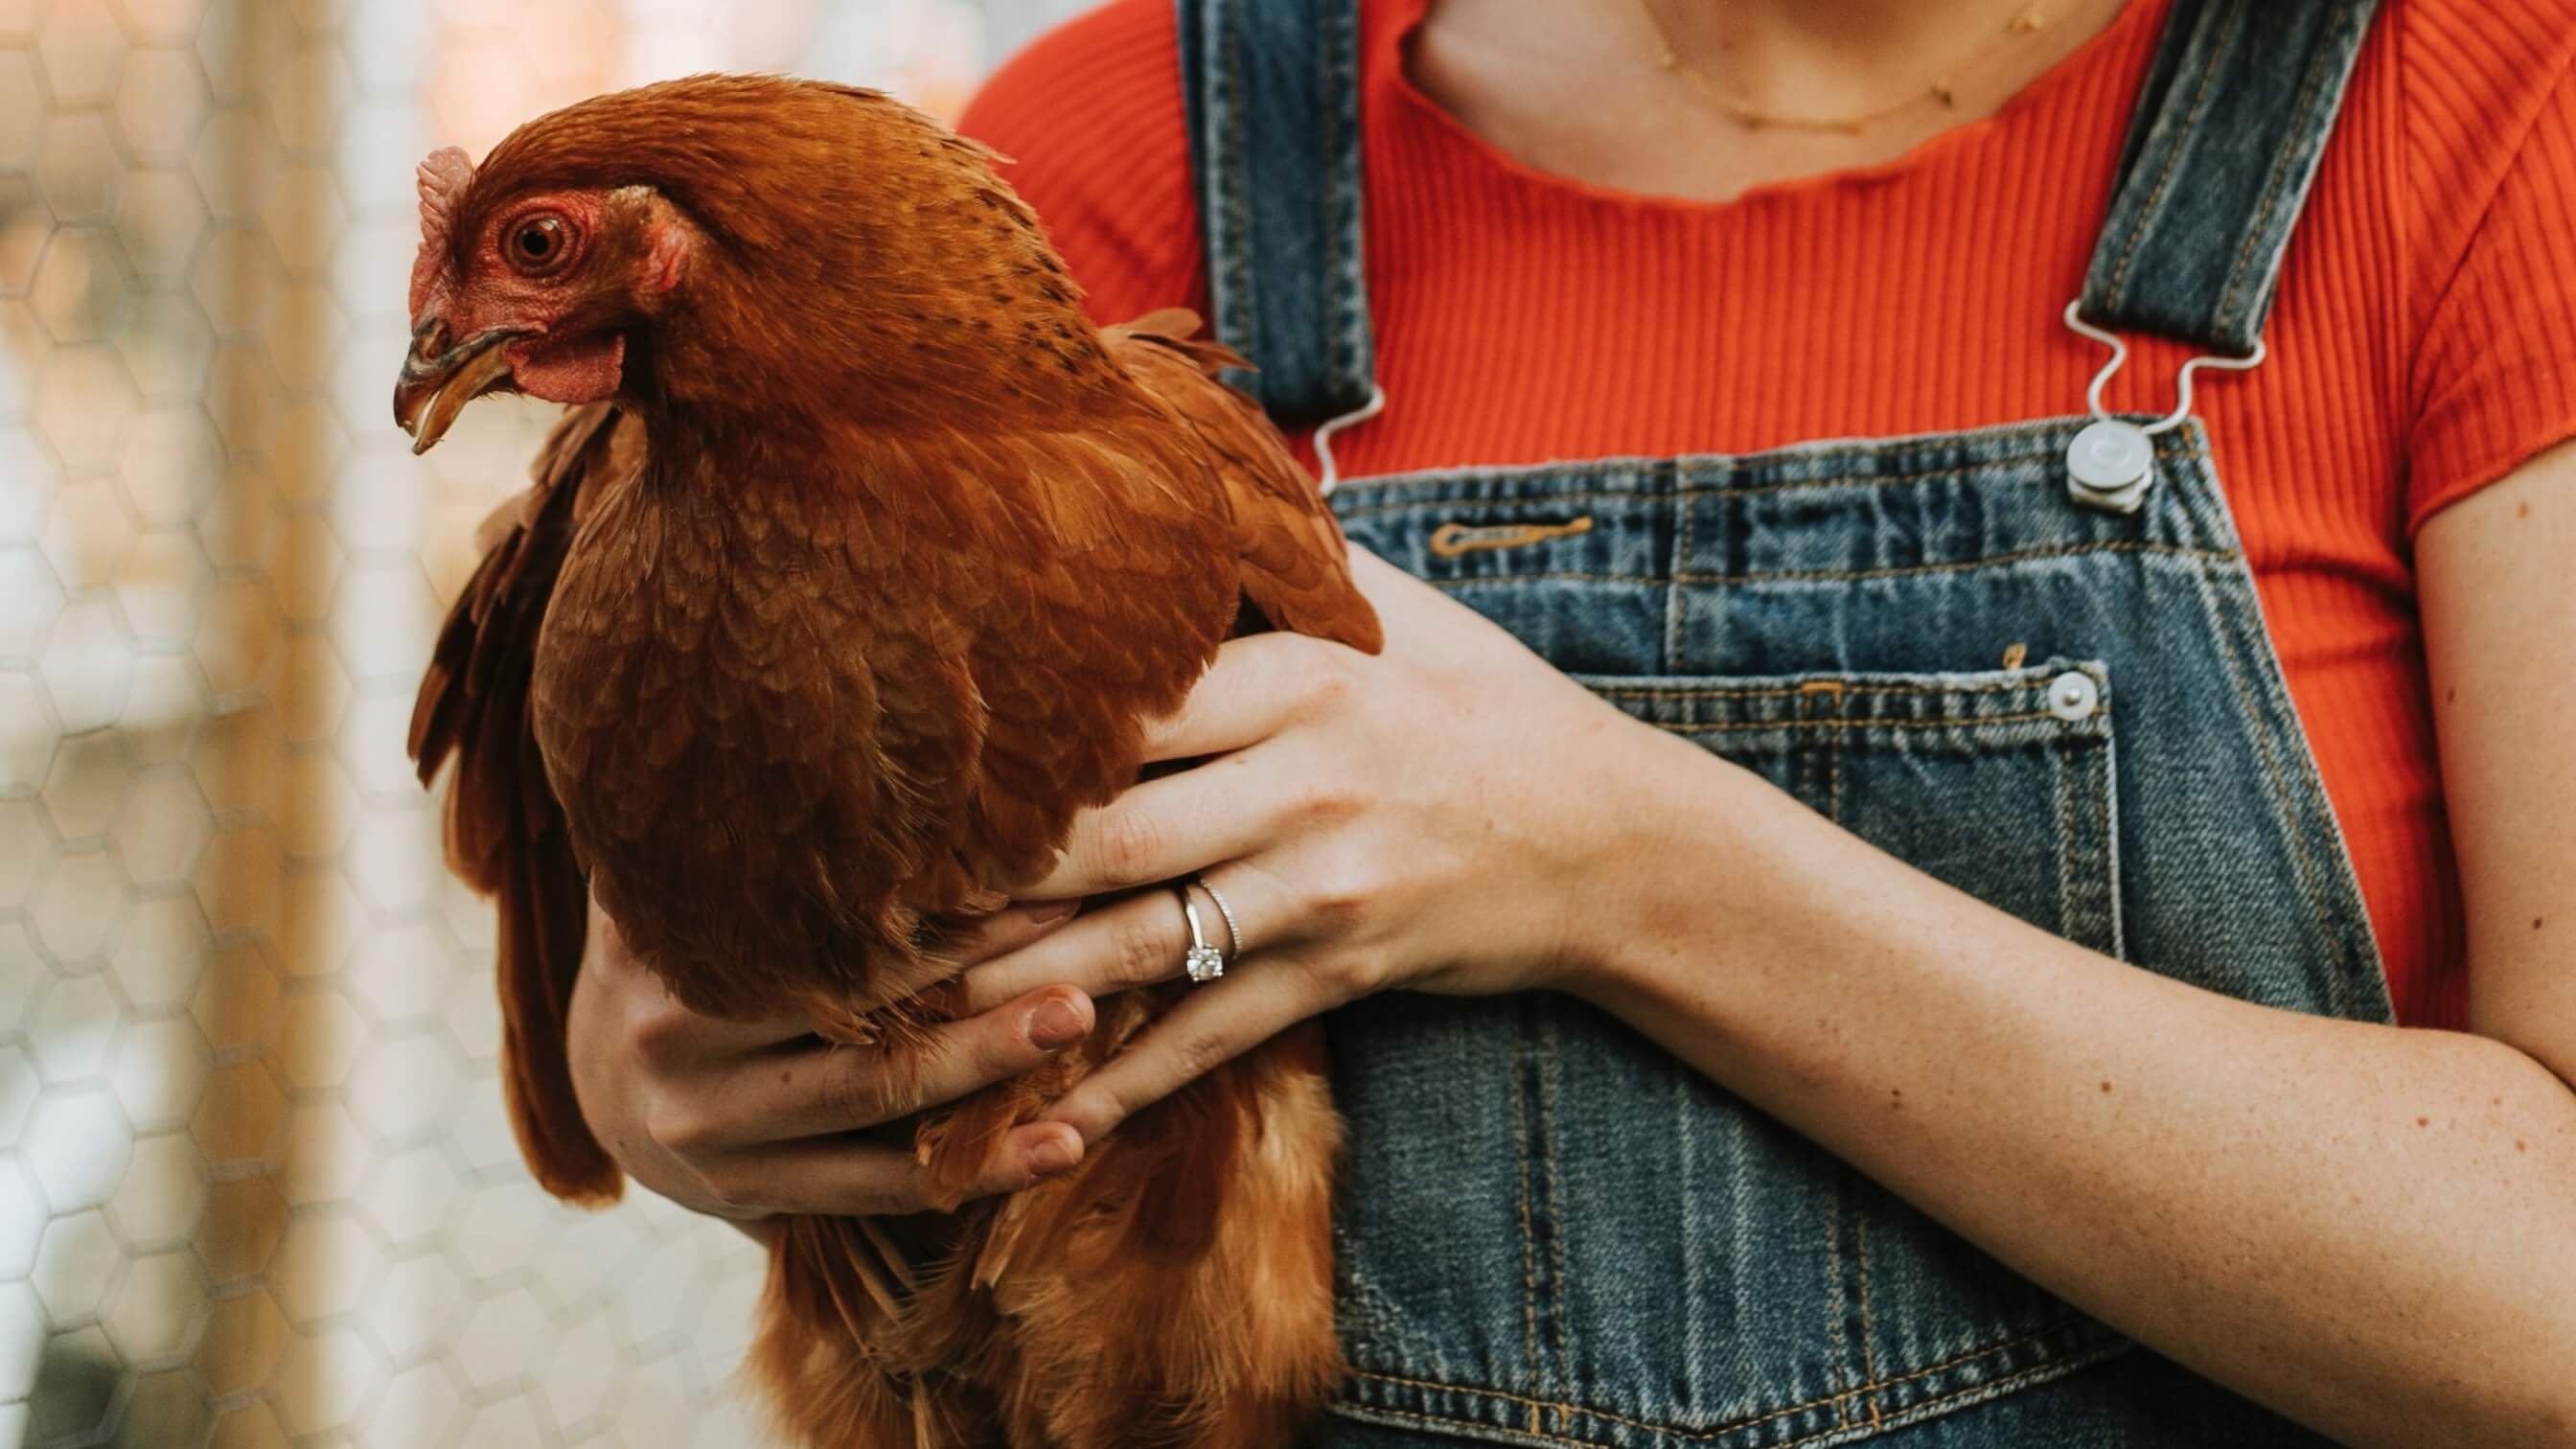 Former Slaughterhouse Worker Now Saves Millions of Animals